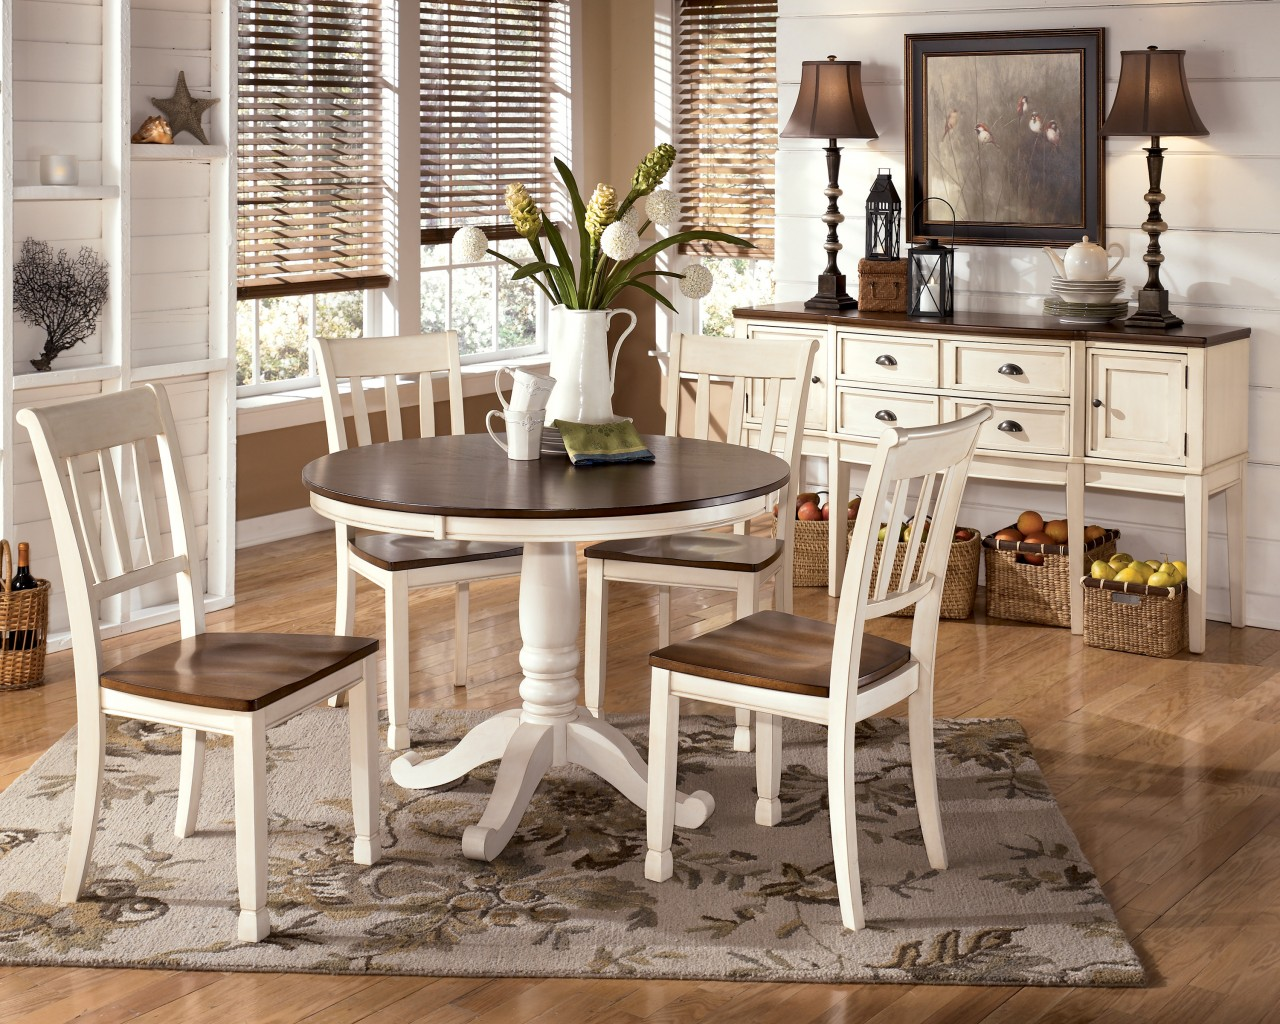 Dining table top design ideas - Rugs For Rustic Dining Rooms